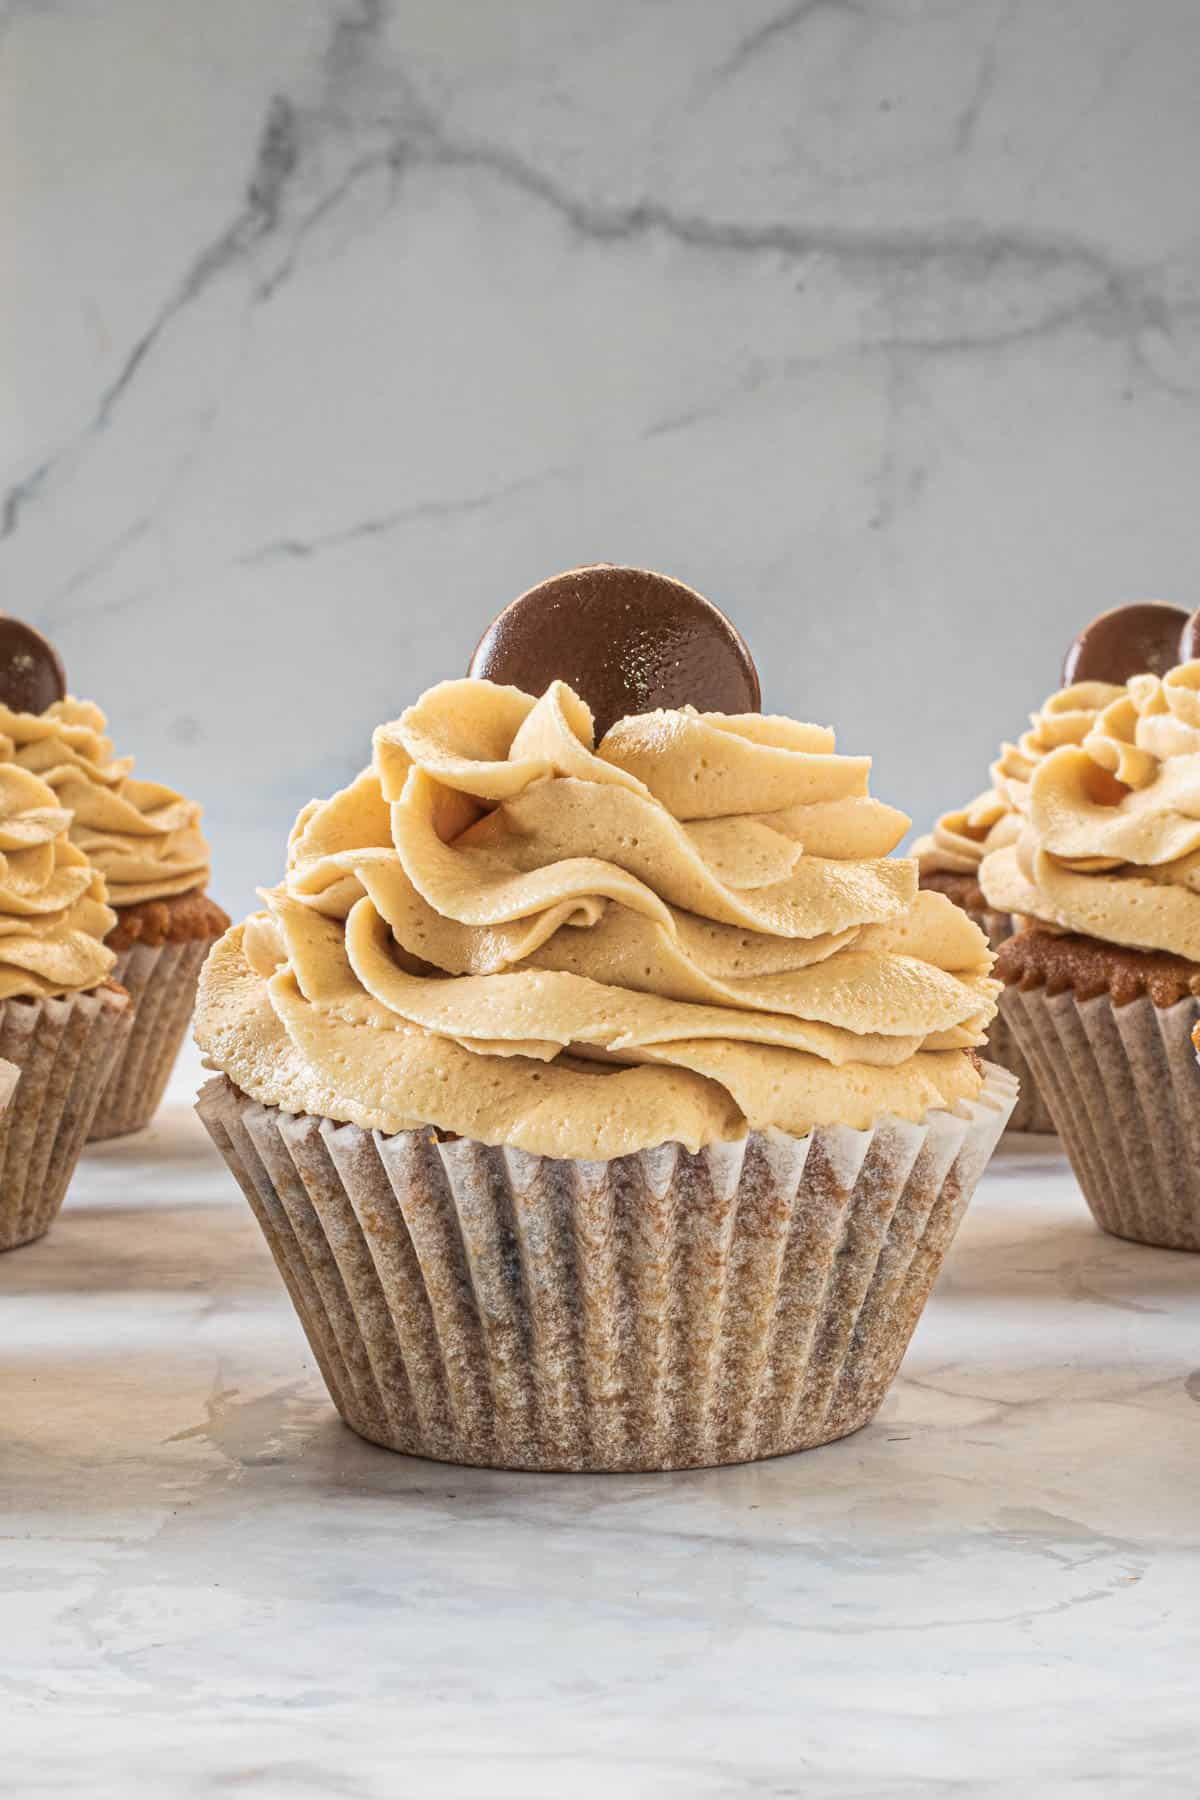 Coffee cupcakes in white cupcake casings, decorated with buttercream swirl and chocolate coin